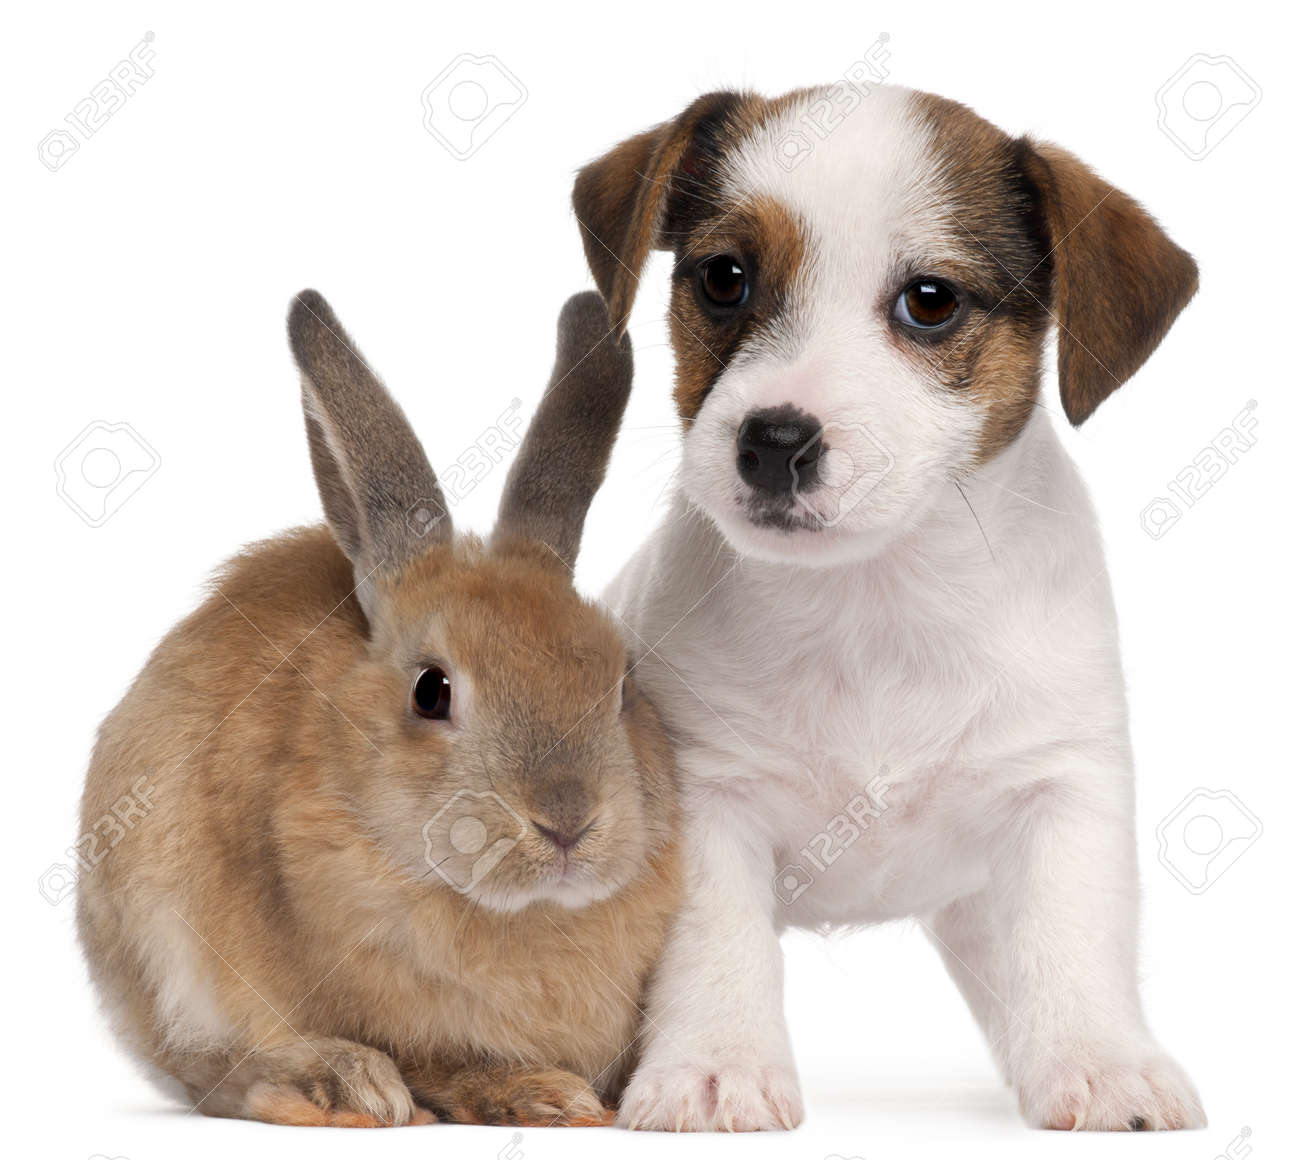 bunny front view stock photos royalty free bunny front view